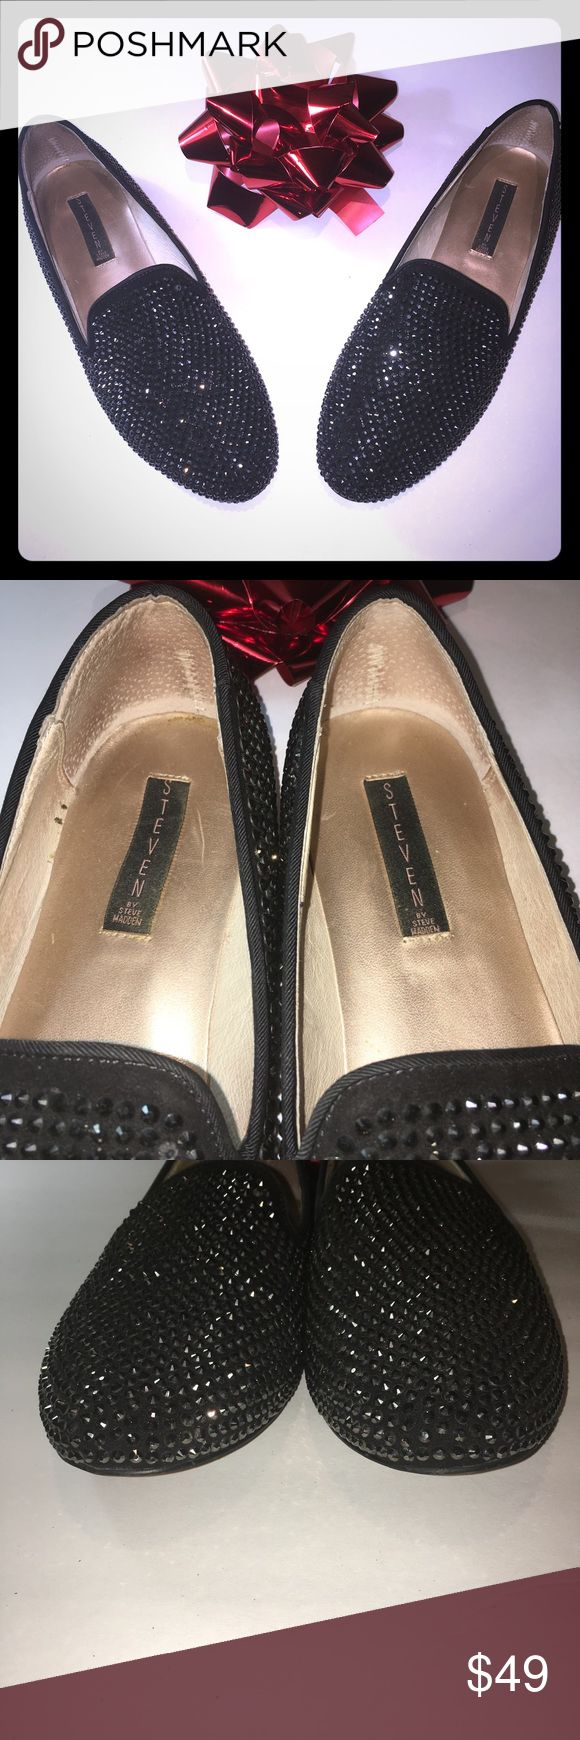 Black Studded Rhinestone Flat Size 11  Shoes Steven by Steve Madden  Black Rhinestone Bling Flats These shoes seem to shimmer and sparkle in the light Women's  Size 11 M Shoes Madee Slip-On Worn only a few times Steven By Steve Madden Shoes Flats & Loafers